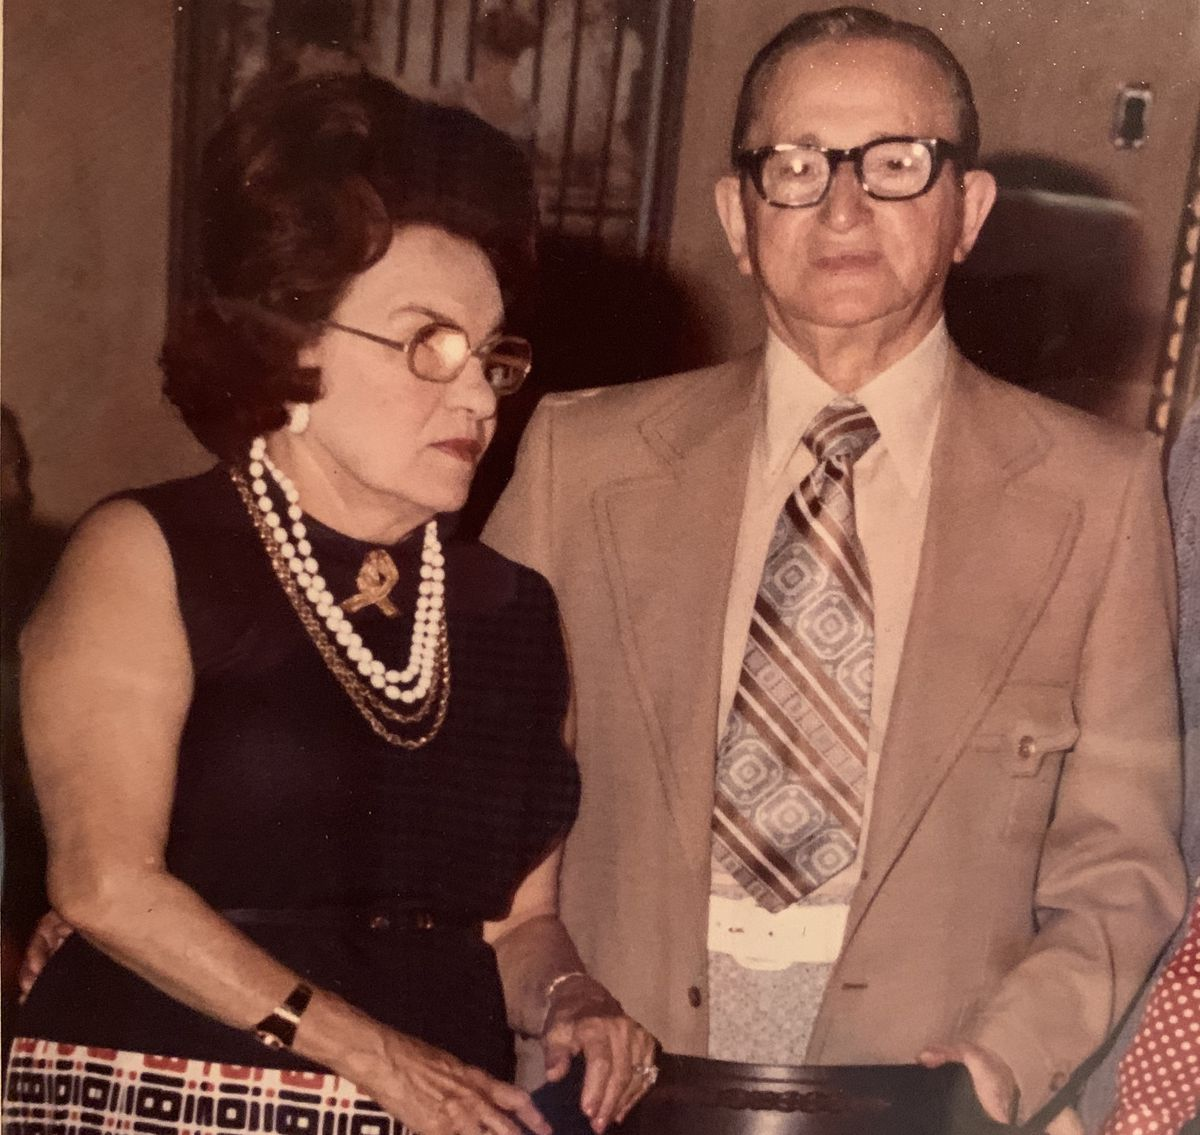 An old photograph of a couple in 1970s-era clothes.